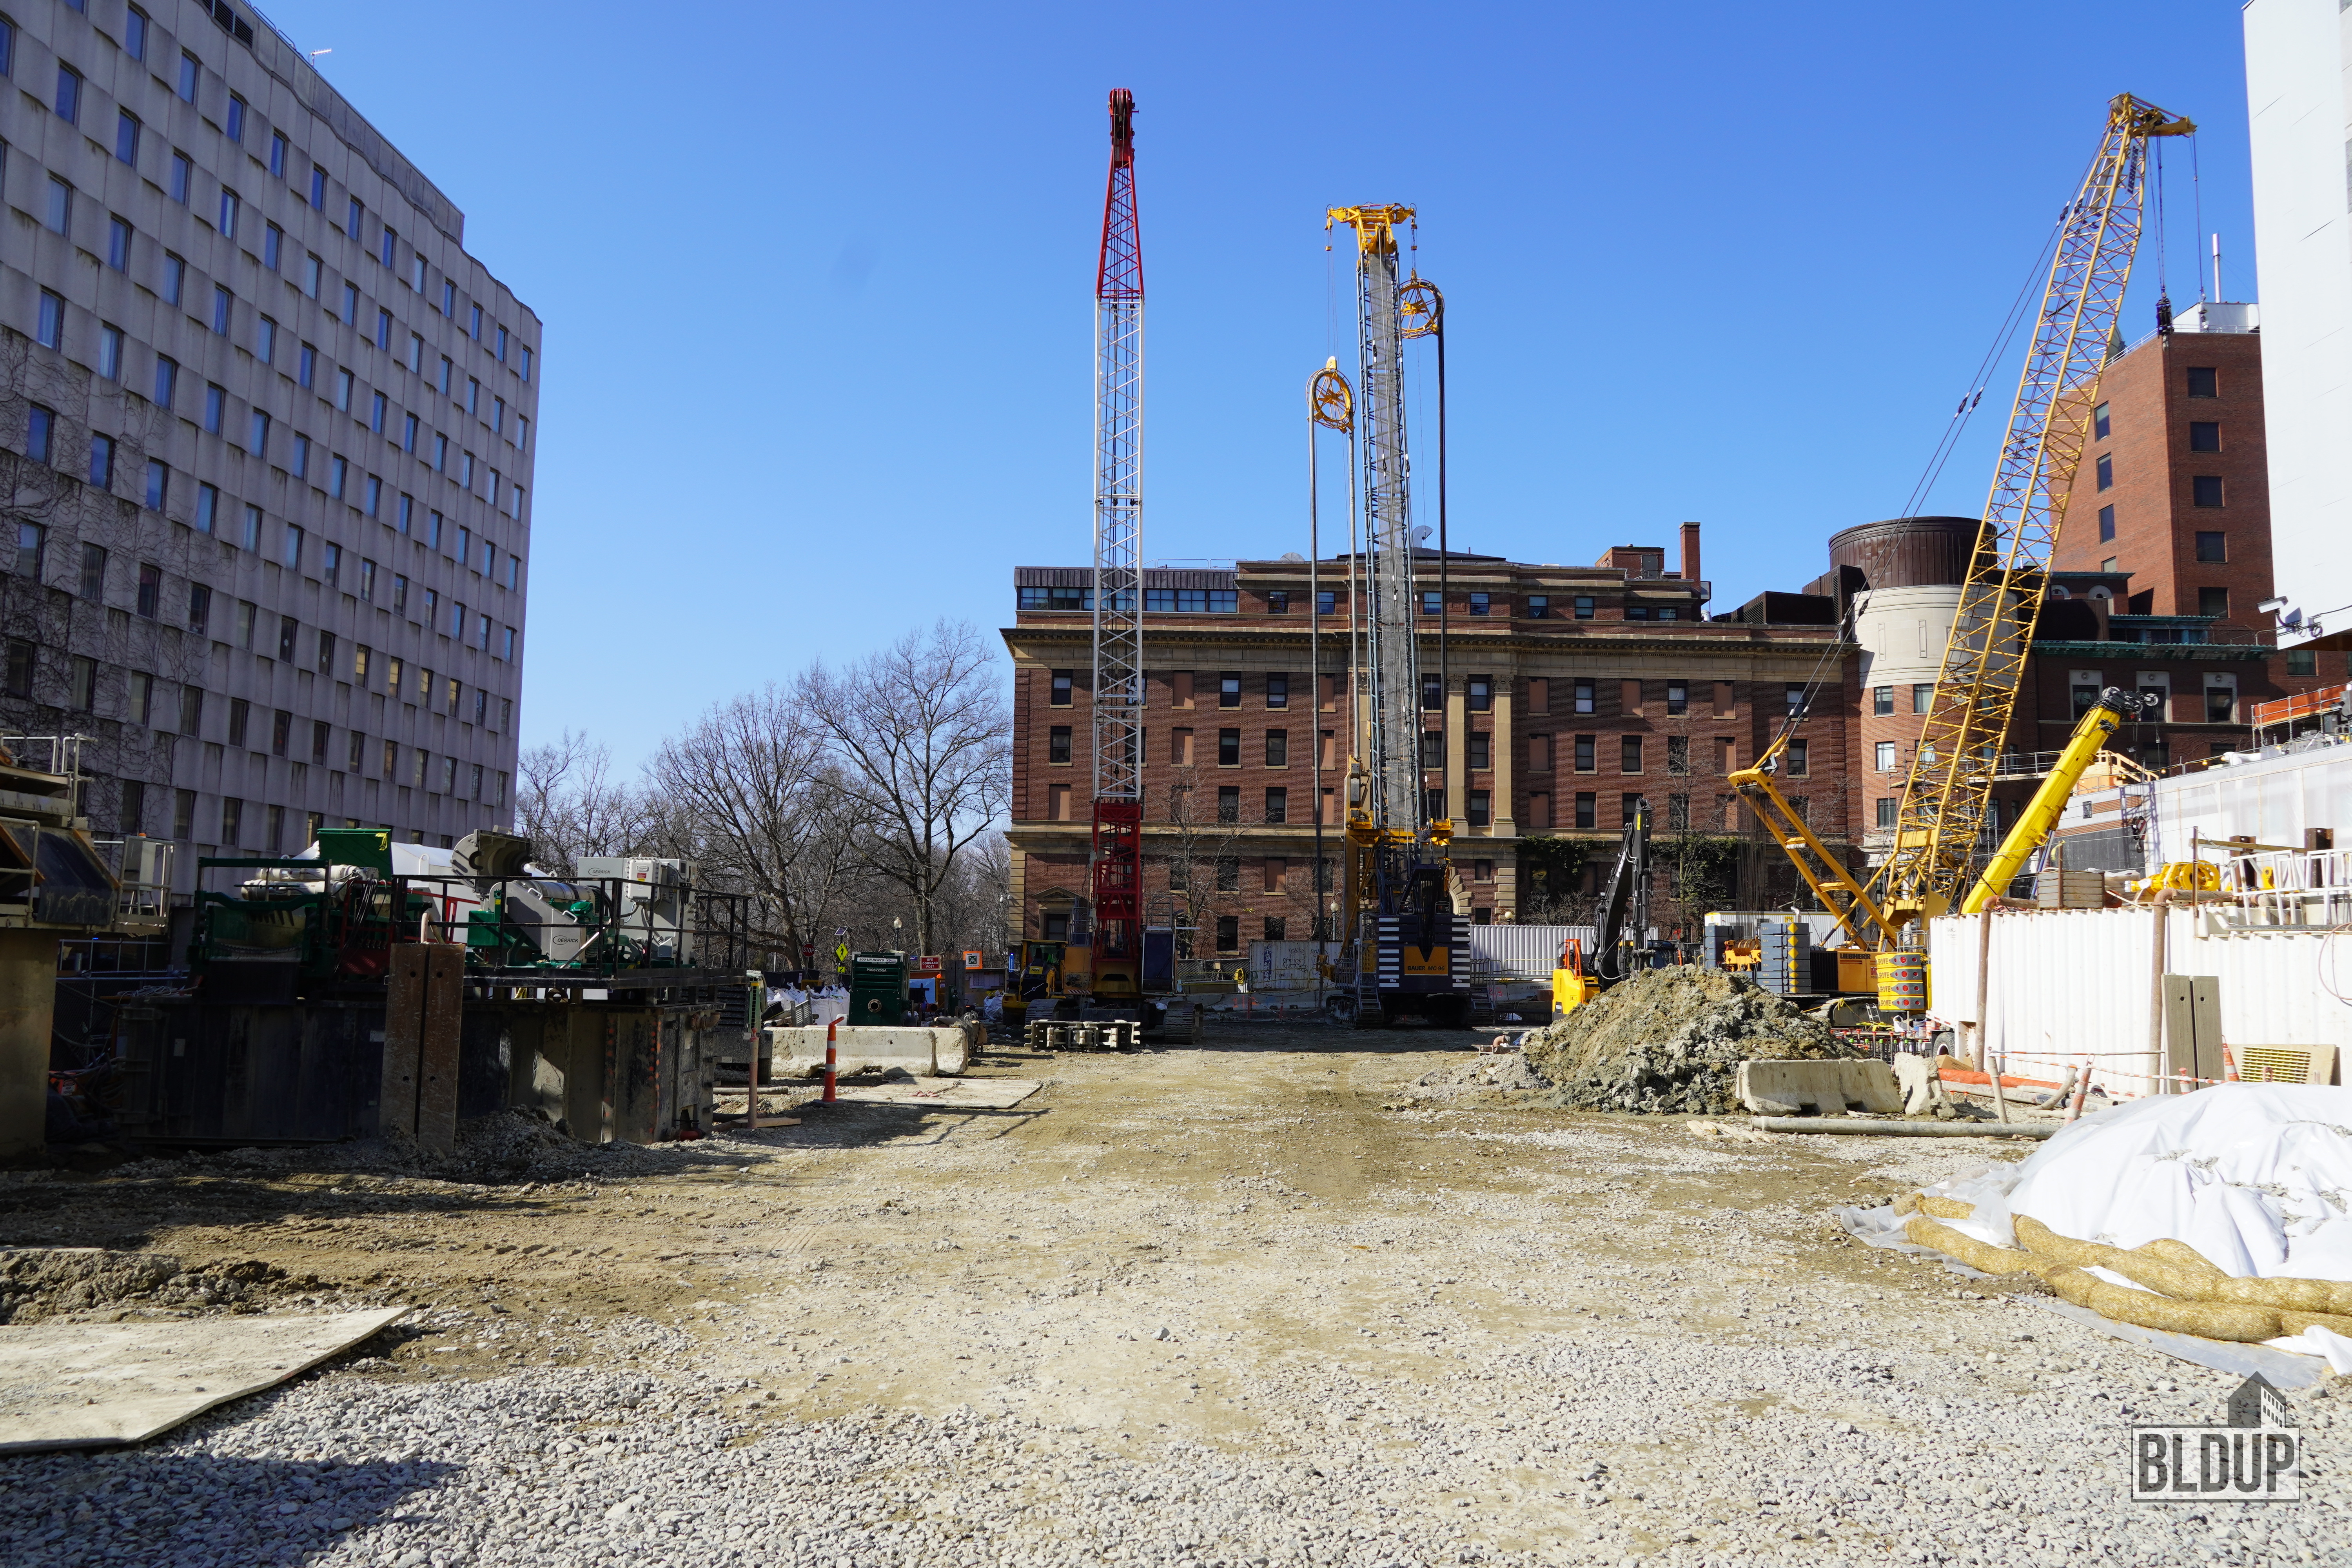 Bldup Site Work Ongoing For Bidmc New Inpatient Building